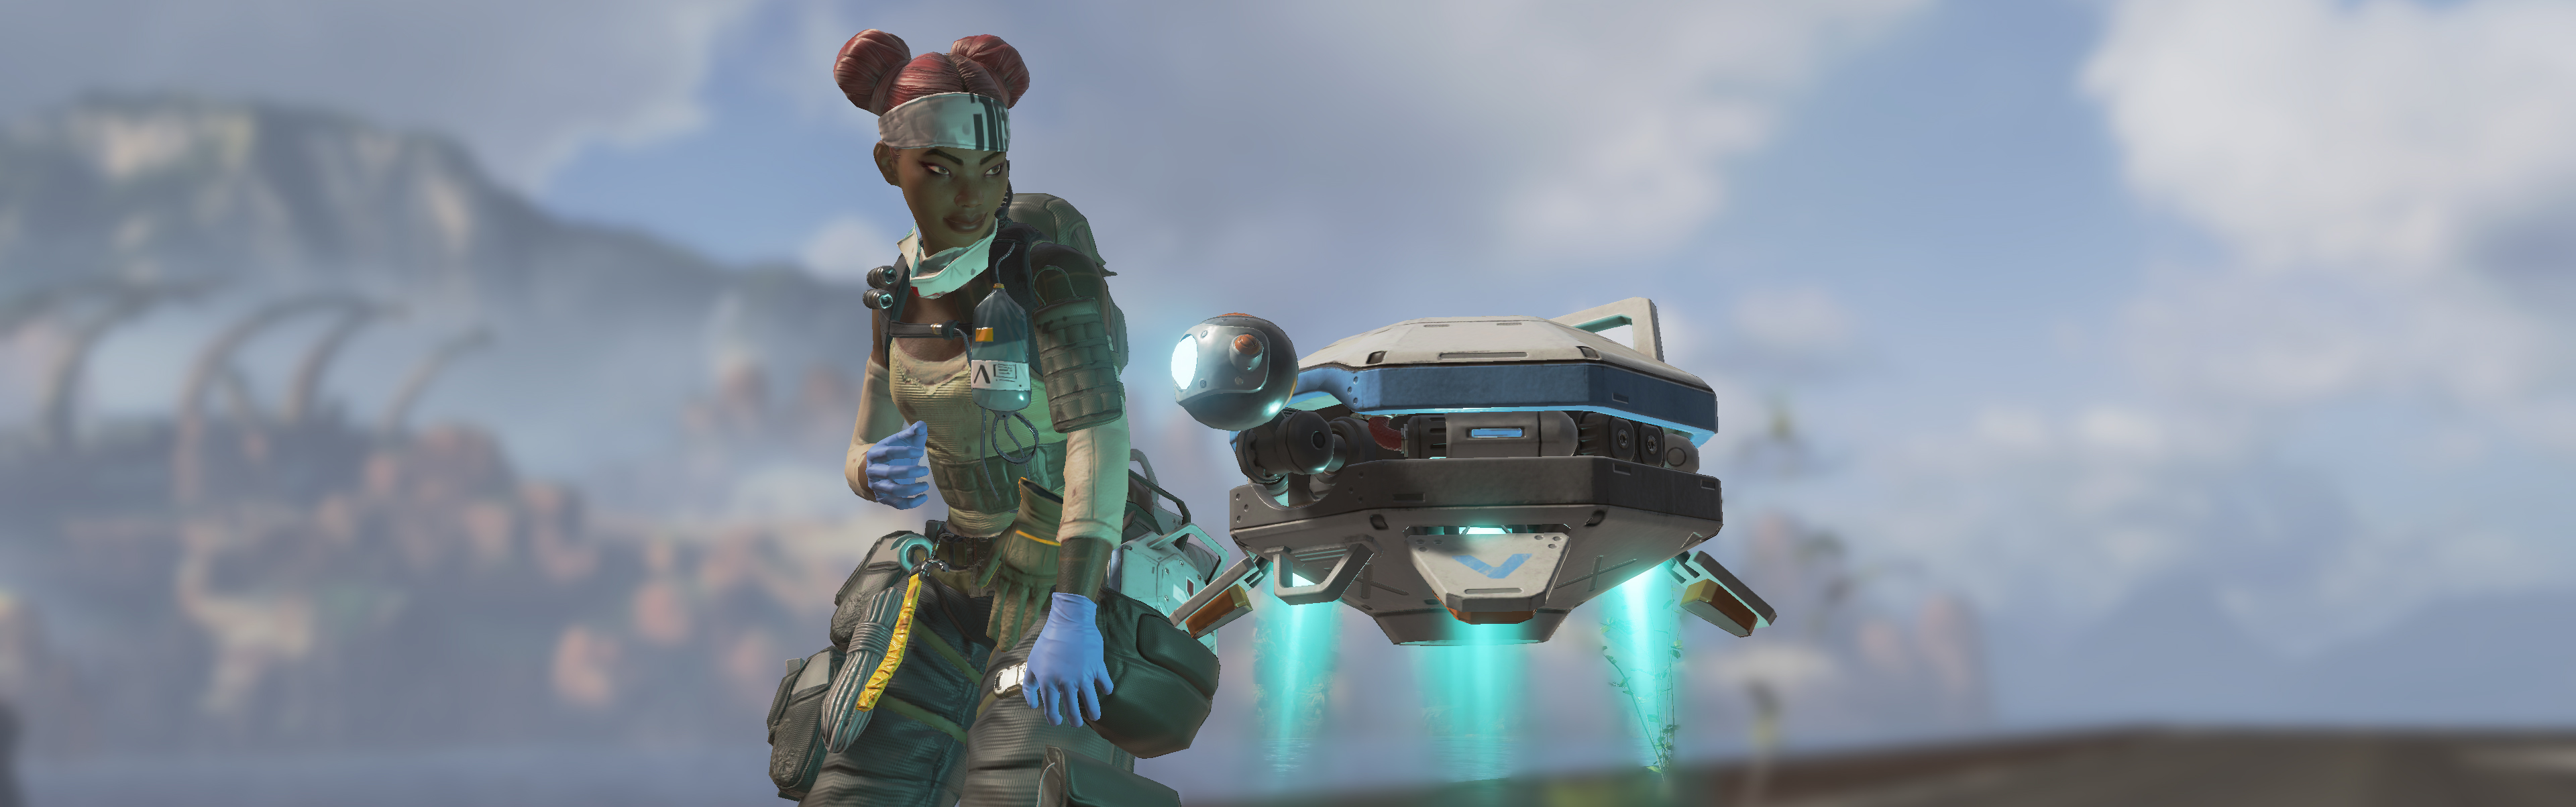 Apex Legends patch 1.1.3 improves hit detection and makes stealth tougher